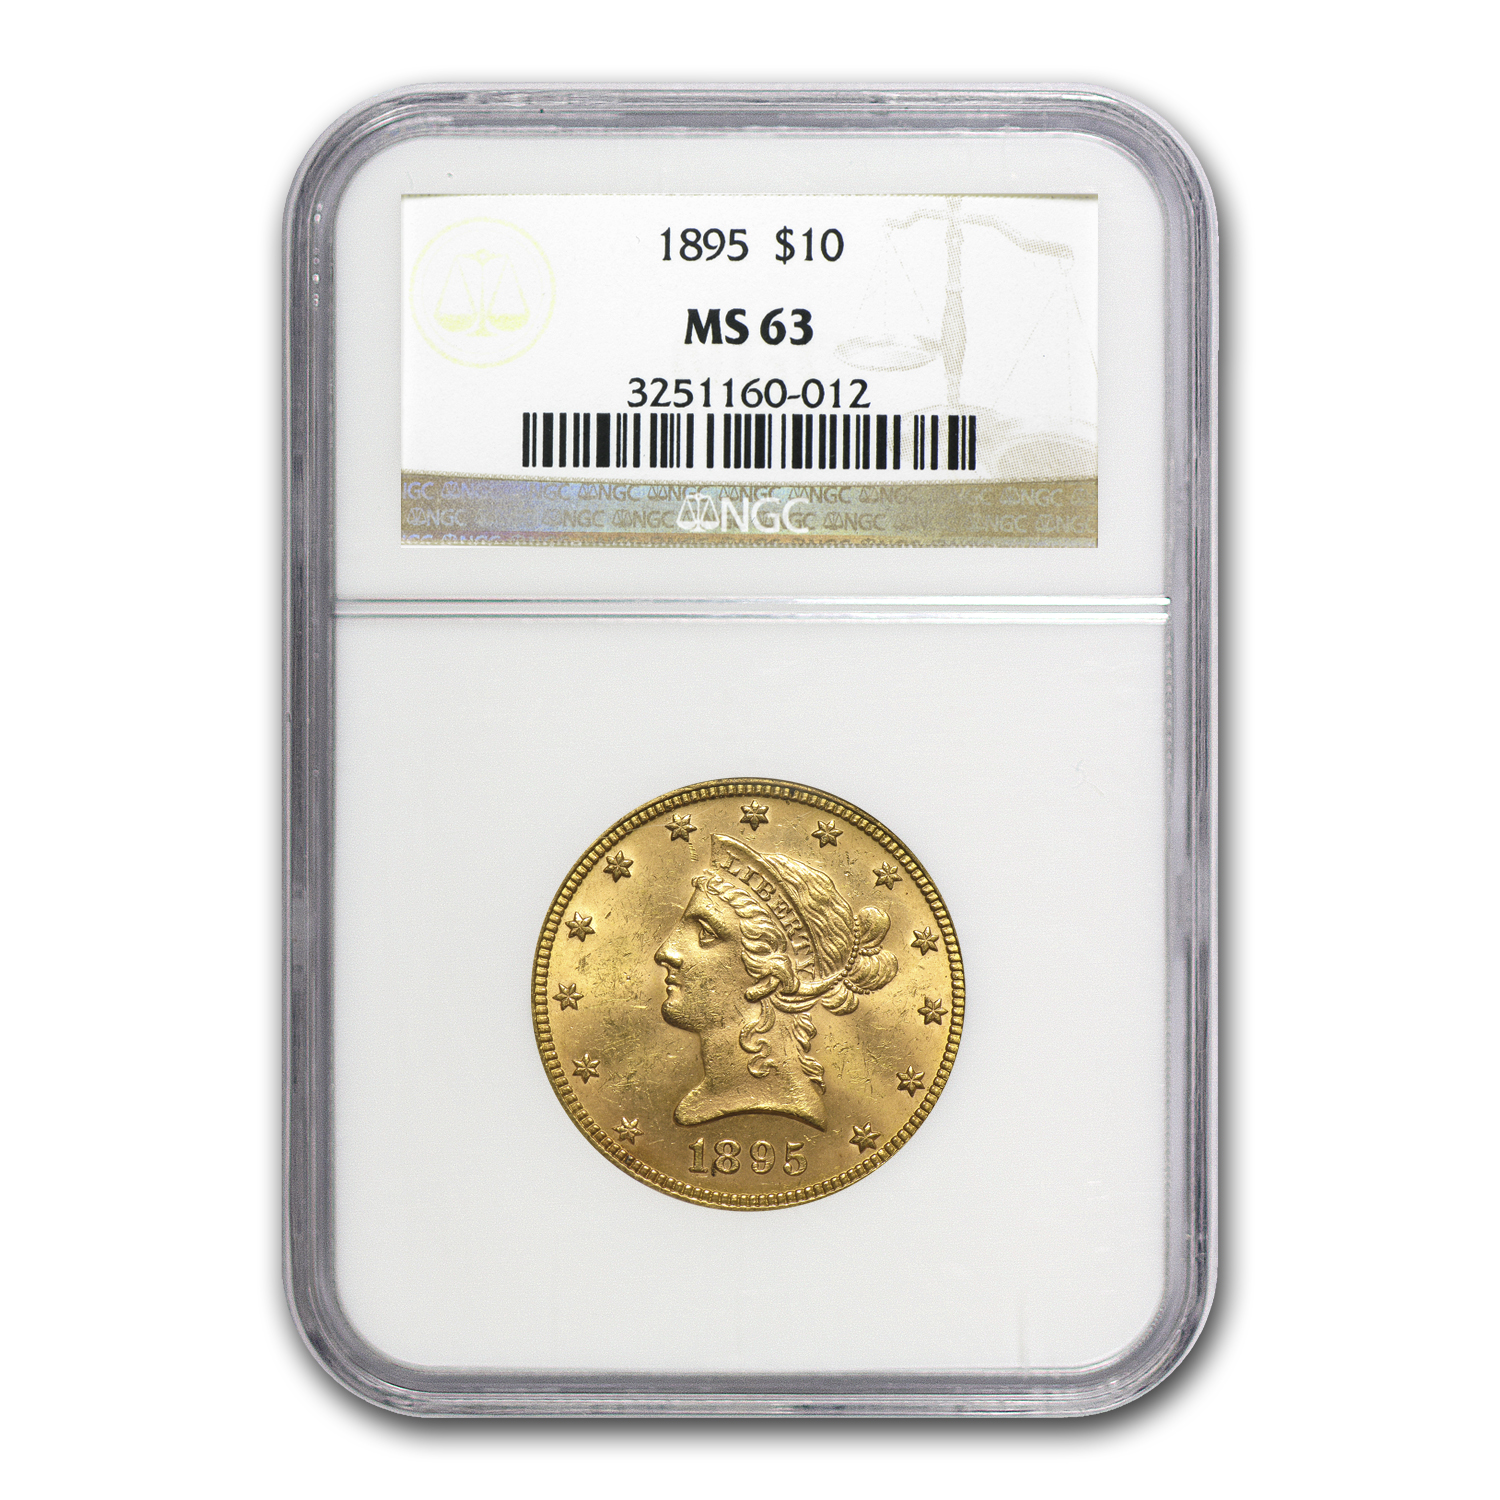 1895 $10 Liberty Gold Eagle MS-63 NGC